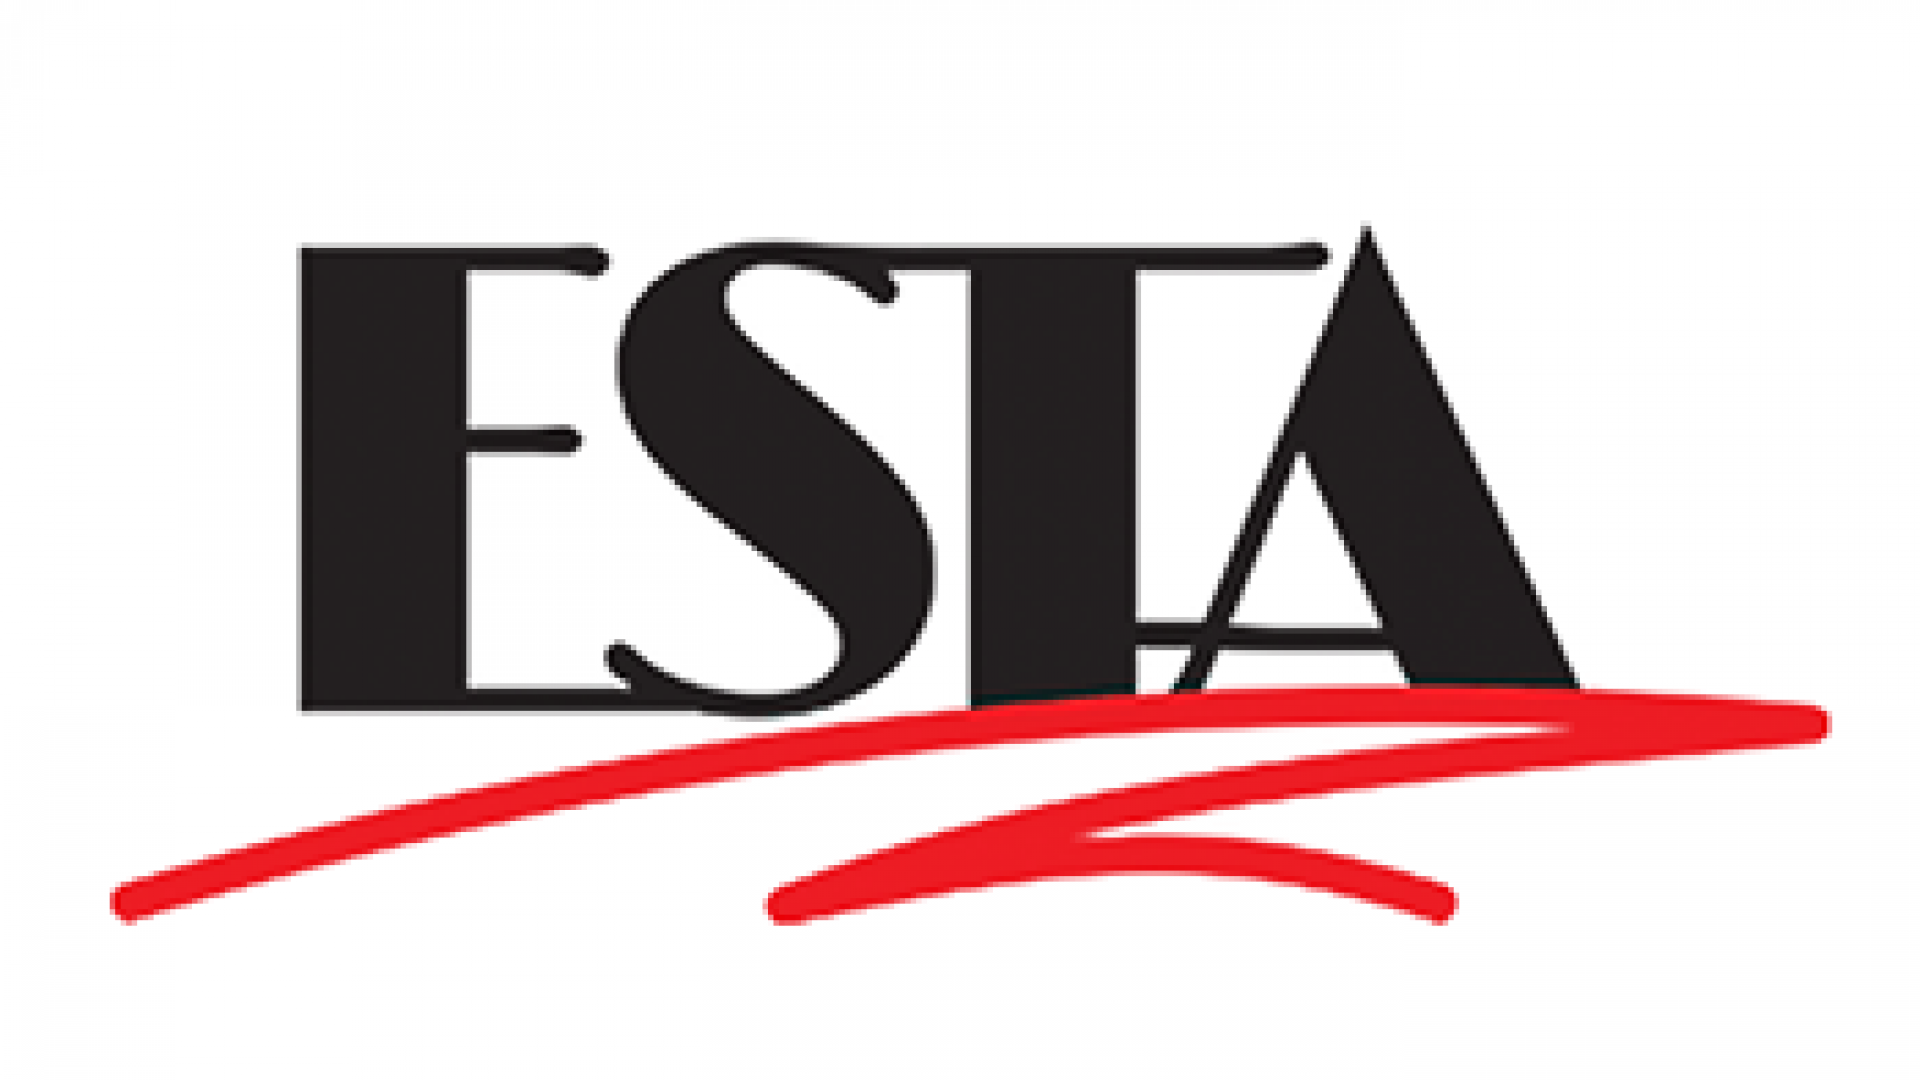 ESTA announces yet another ANSI standard for event safety